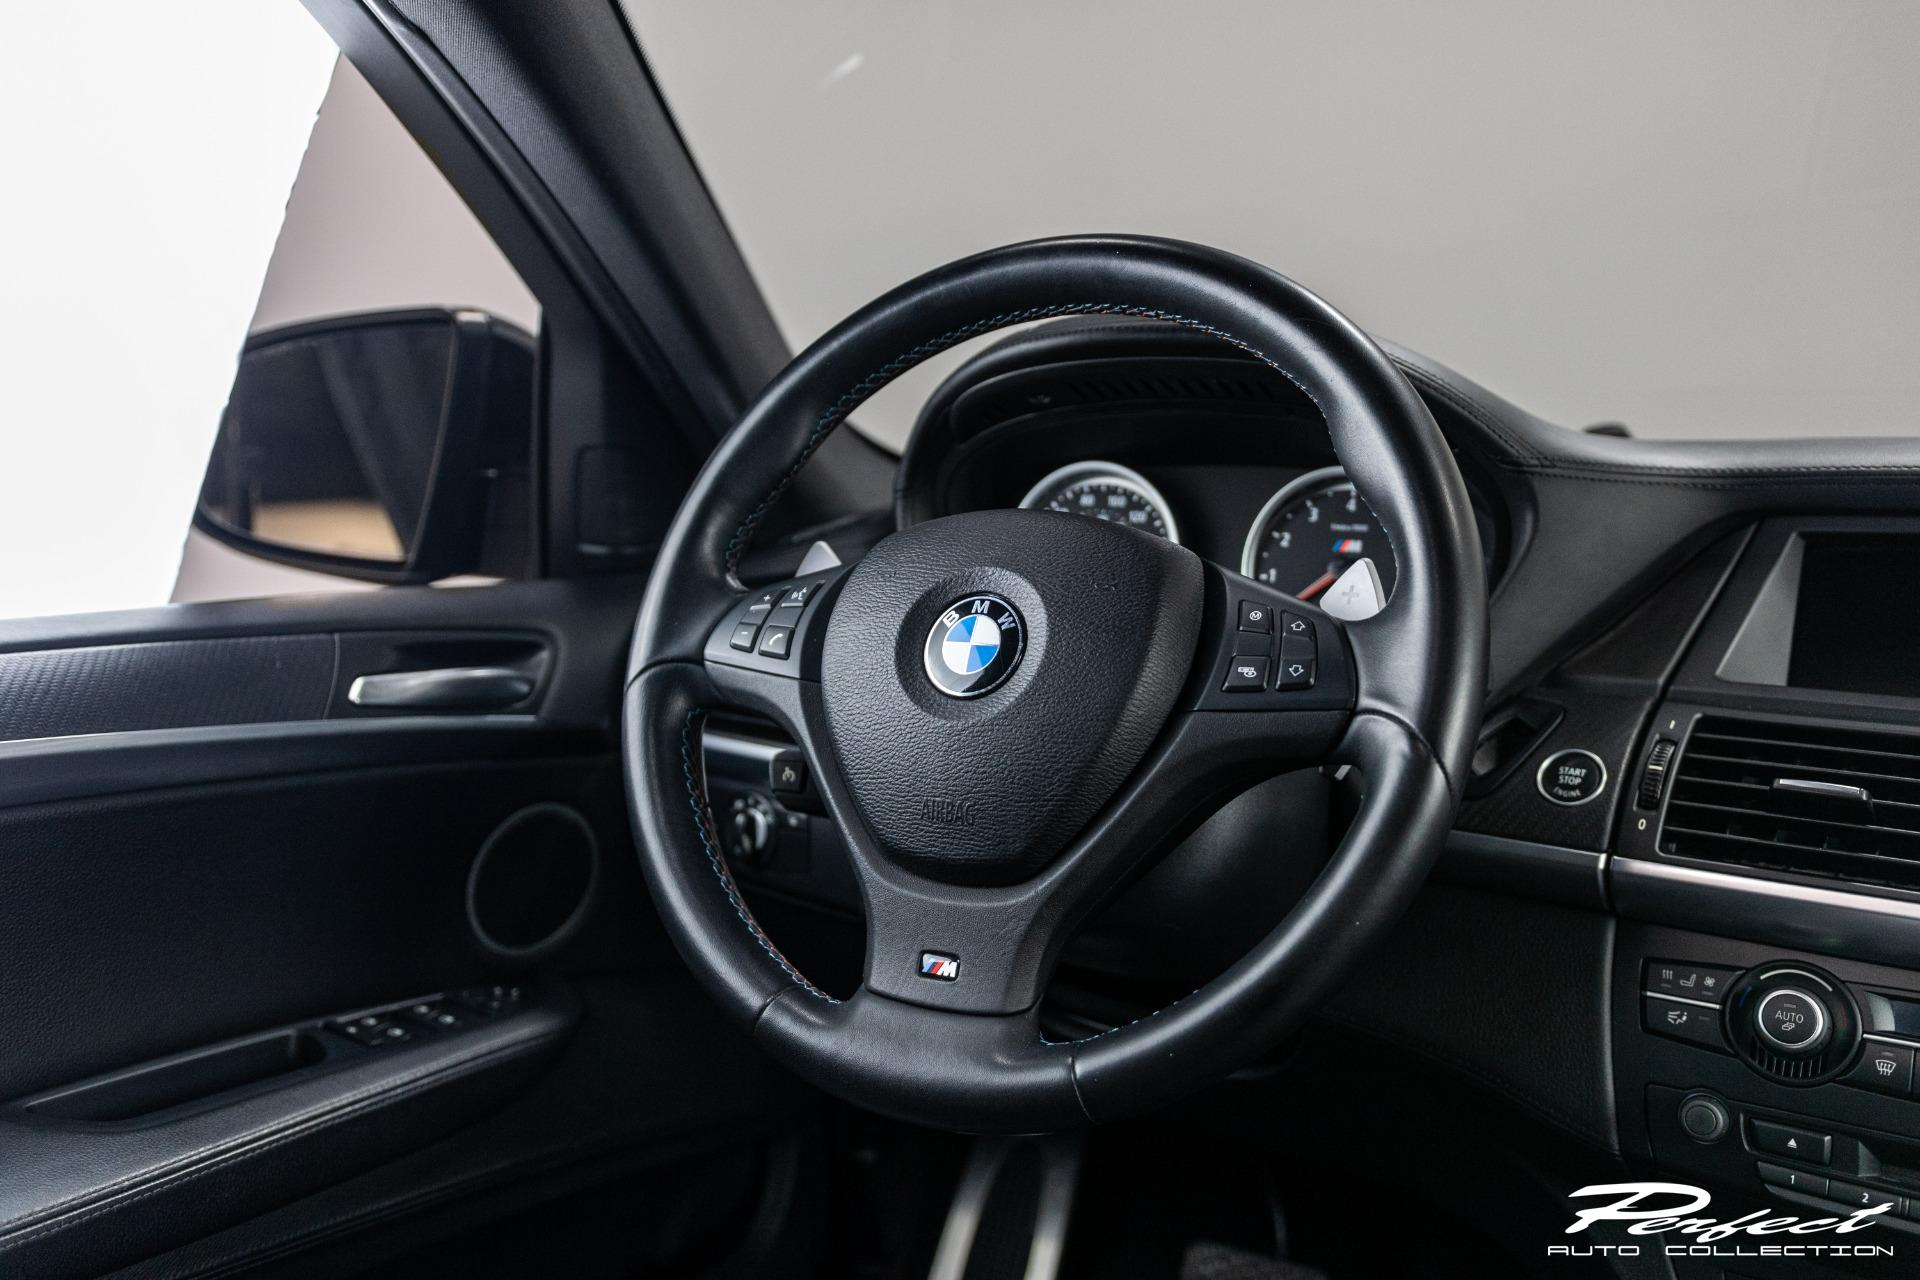 Used 2013 BMW X6 M Hamann Tuning